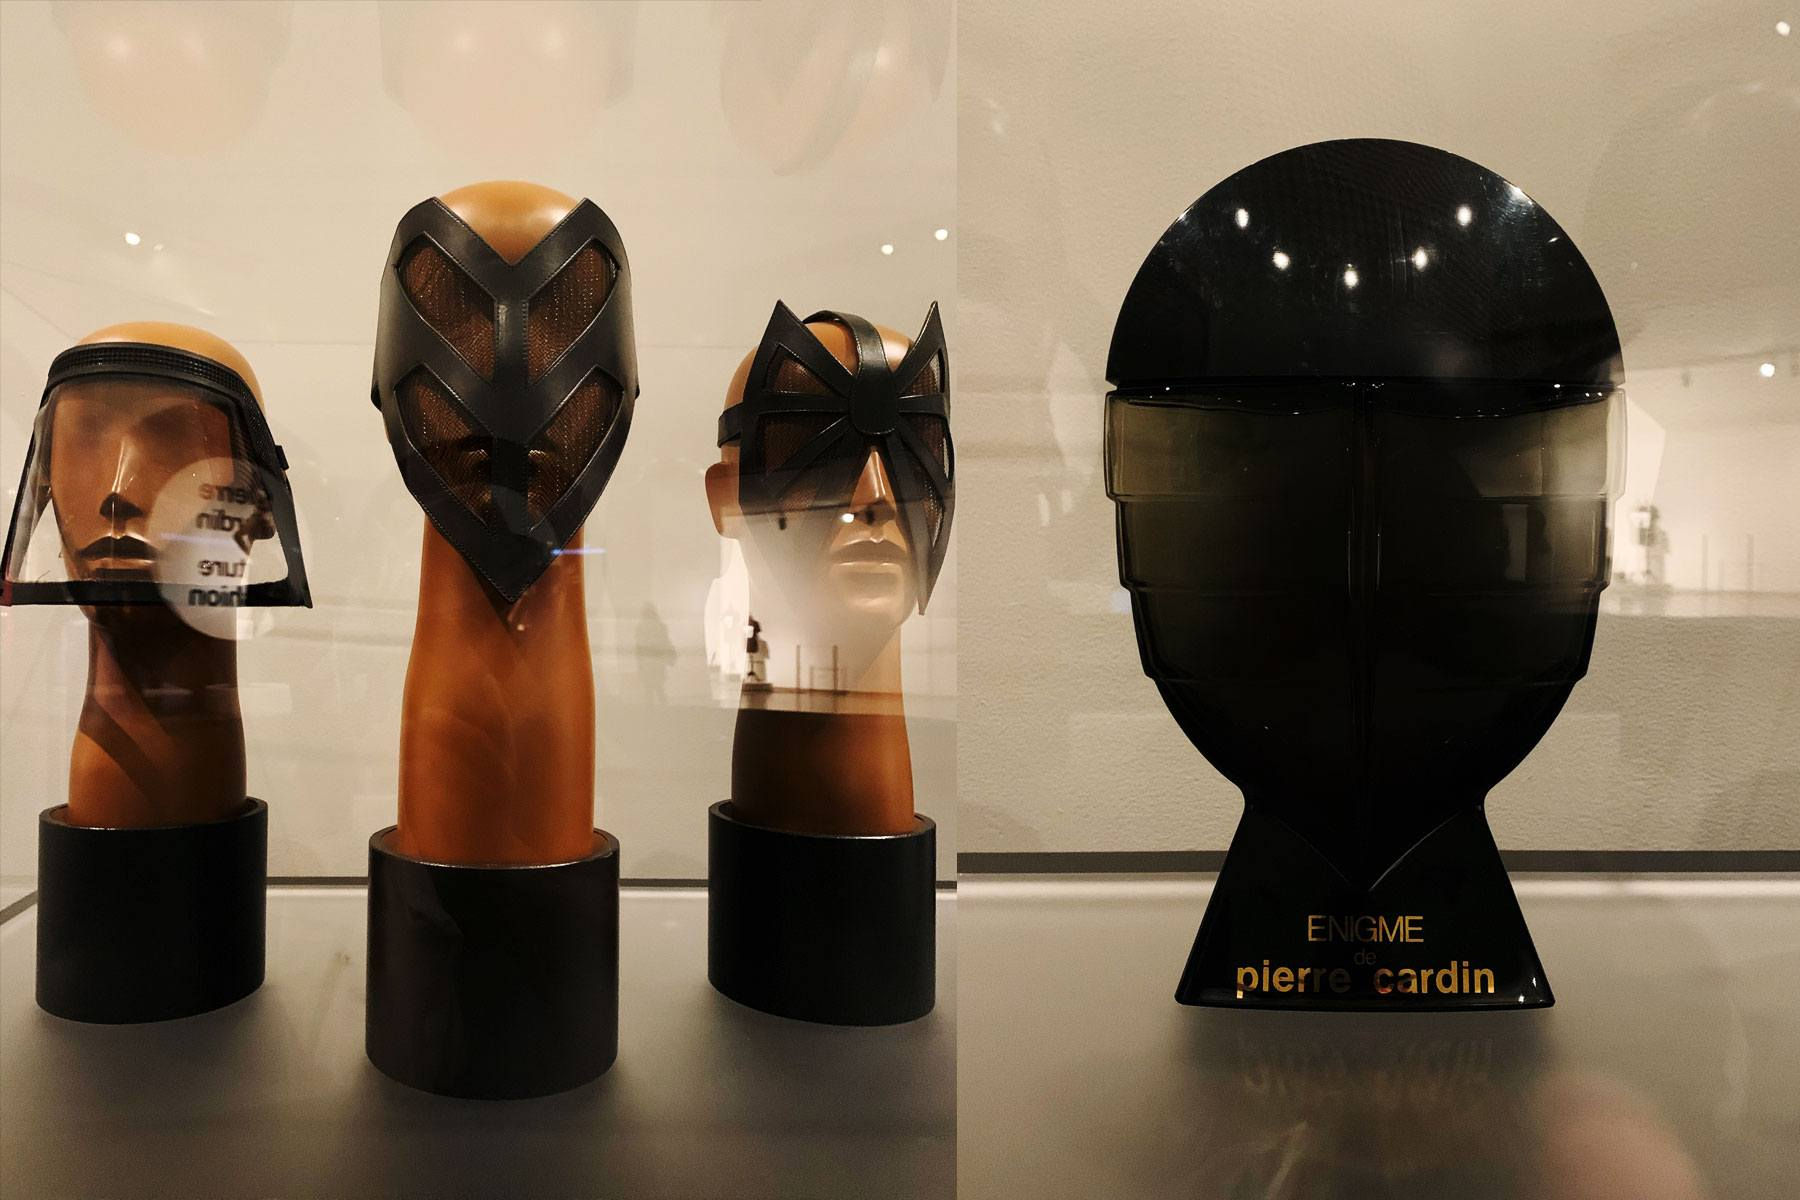 Vintage Pierre Cardin men's headwear at the Brooklyn Museum. Photographed by Alexander Thompson for Ponyboy magazine.